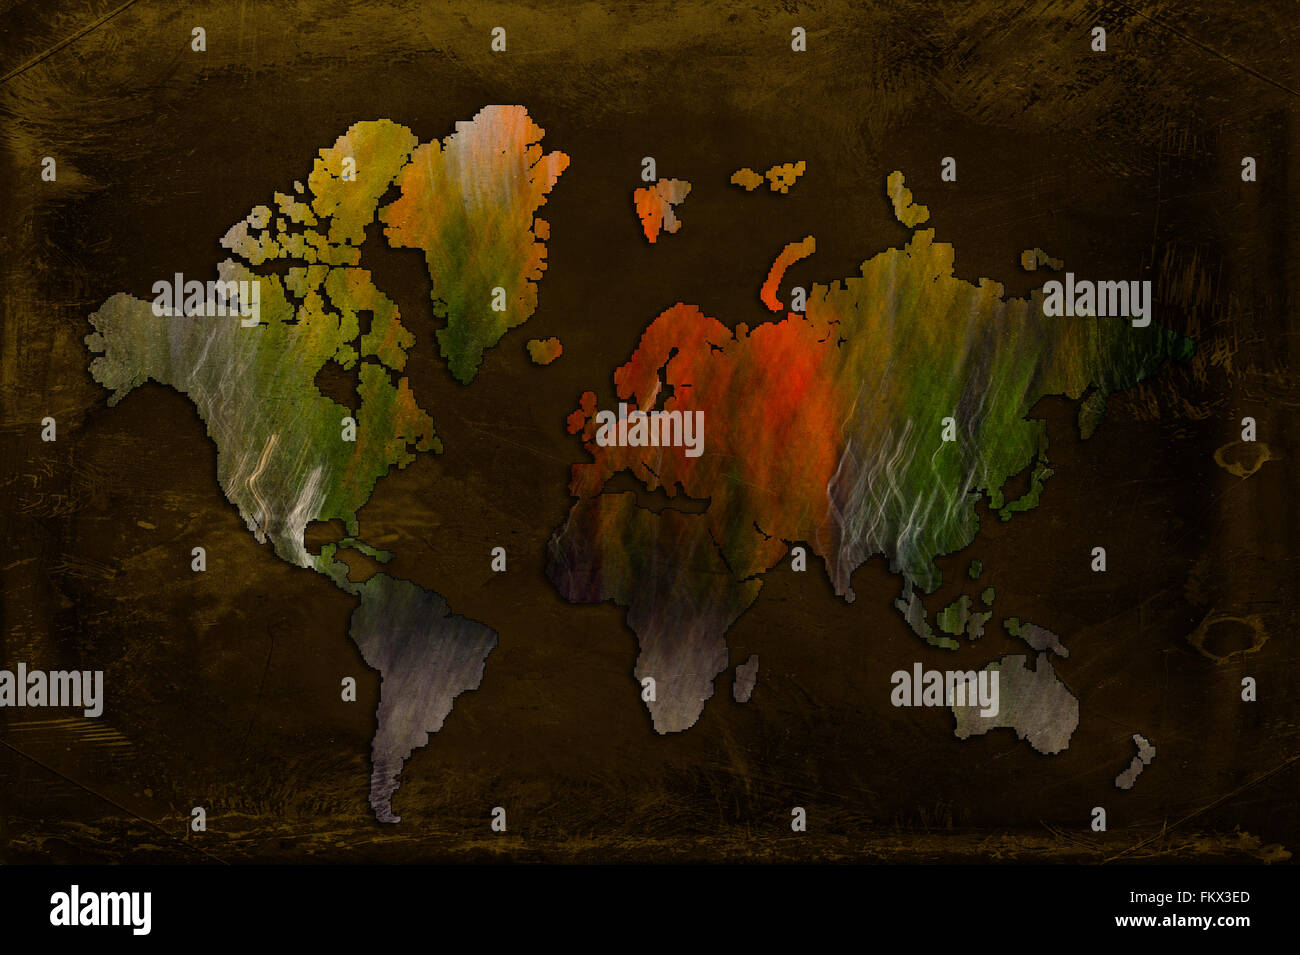 Artistic World Map Made From Abstract Photo Stock Photo Royalty - Artistic world map